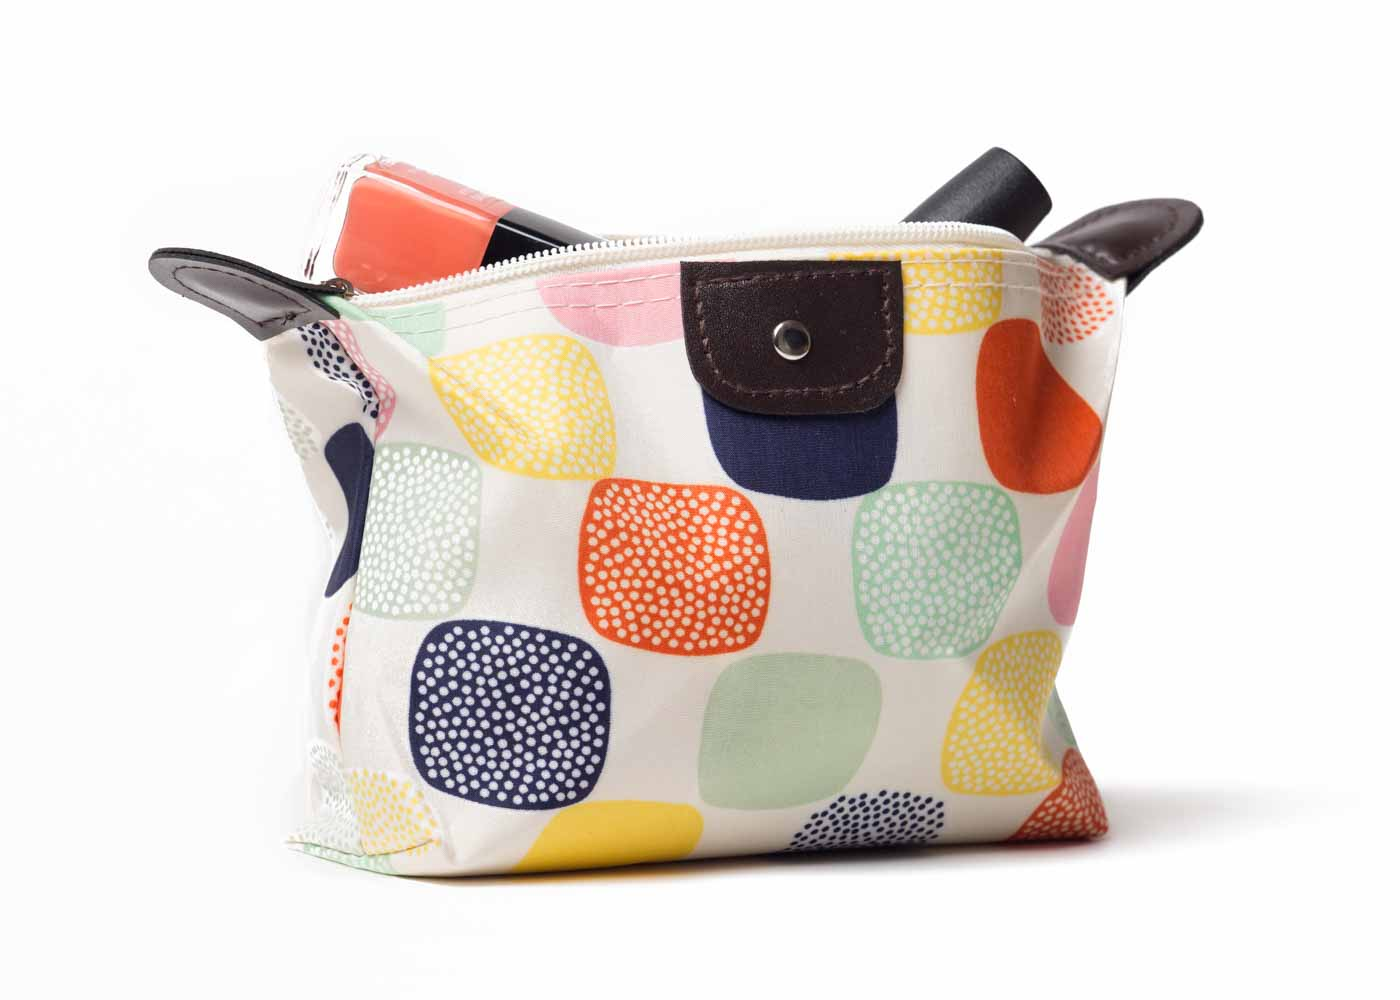 Parateck's cosmetic bag is both affordable and chic.